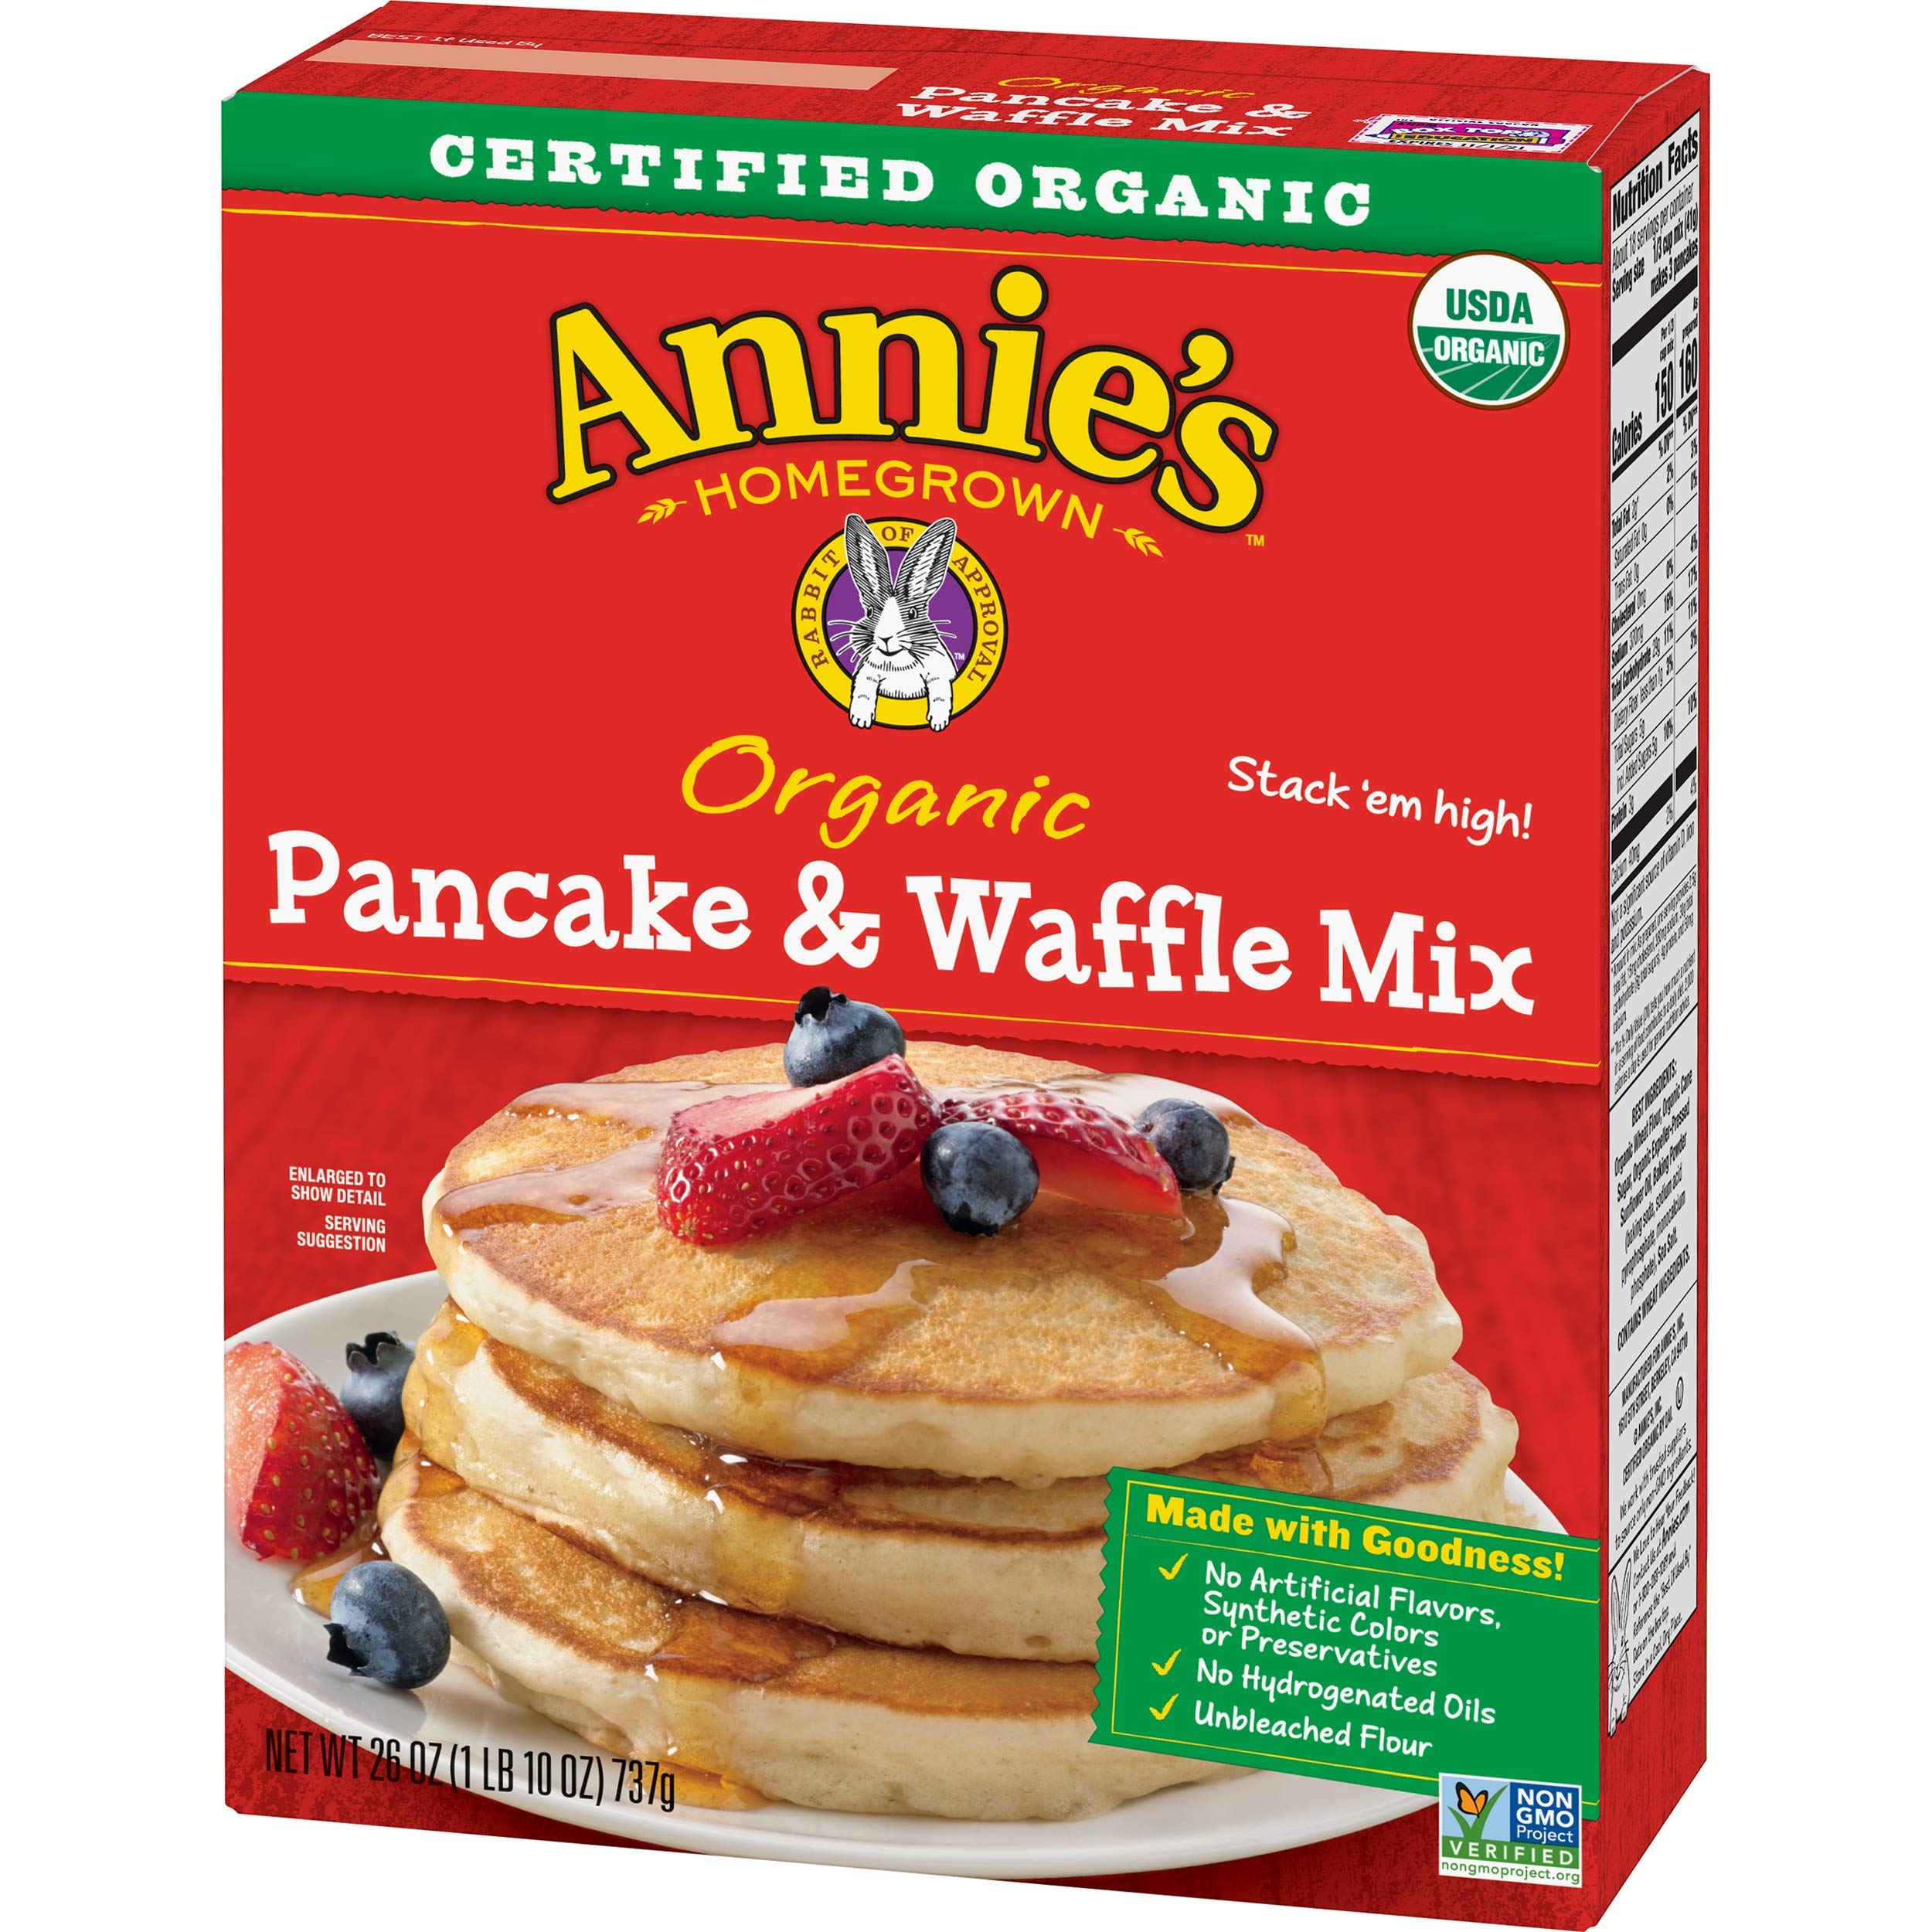 Annie's Organic Pancake and Waffle Mix Box, 26 oz (Pack of 8) by Annie's Homegrown